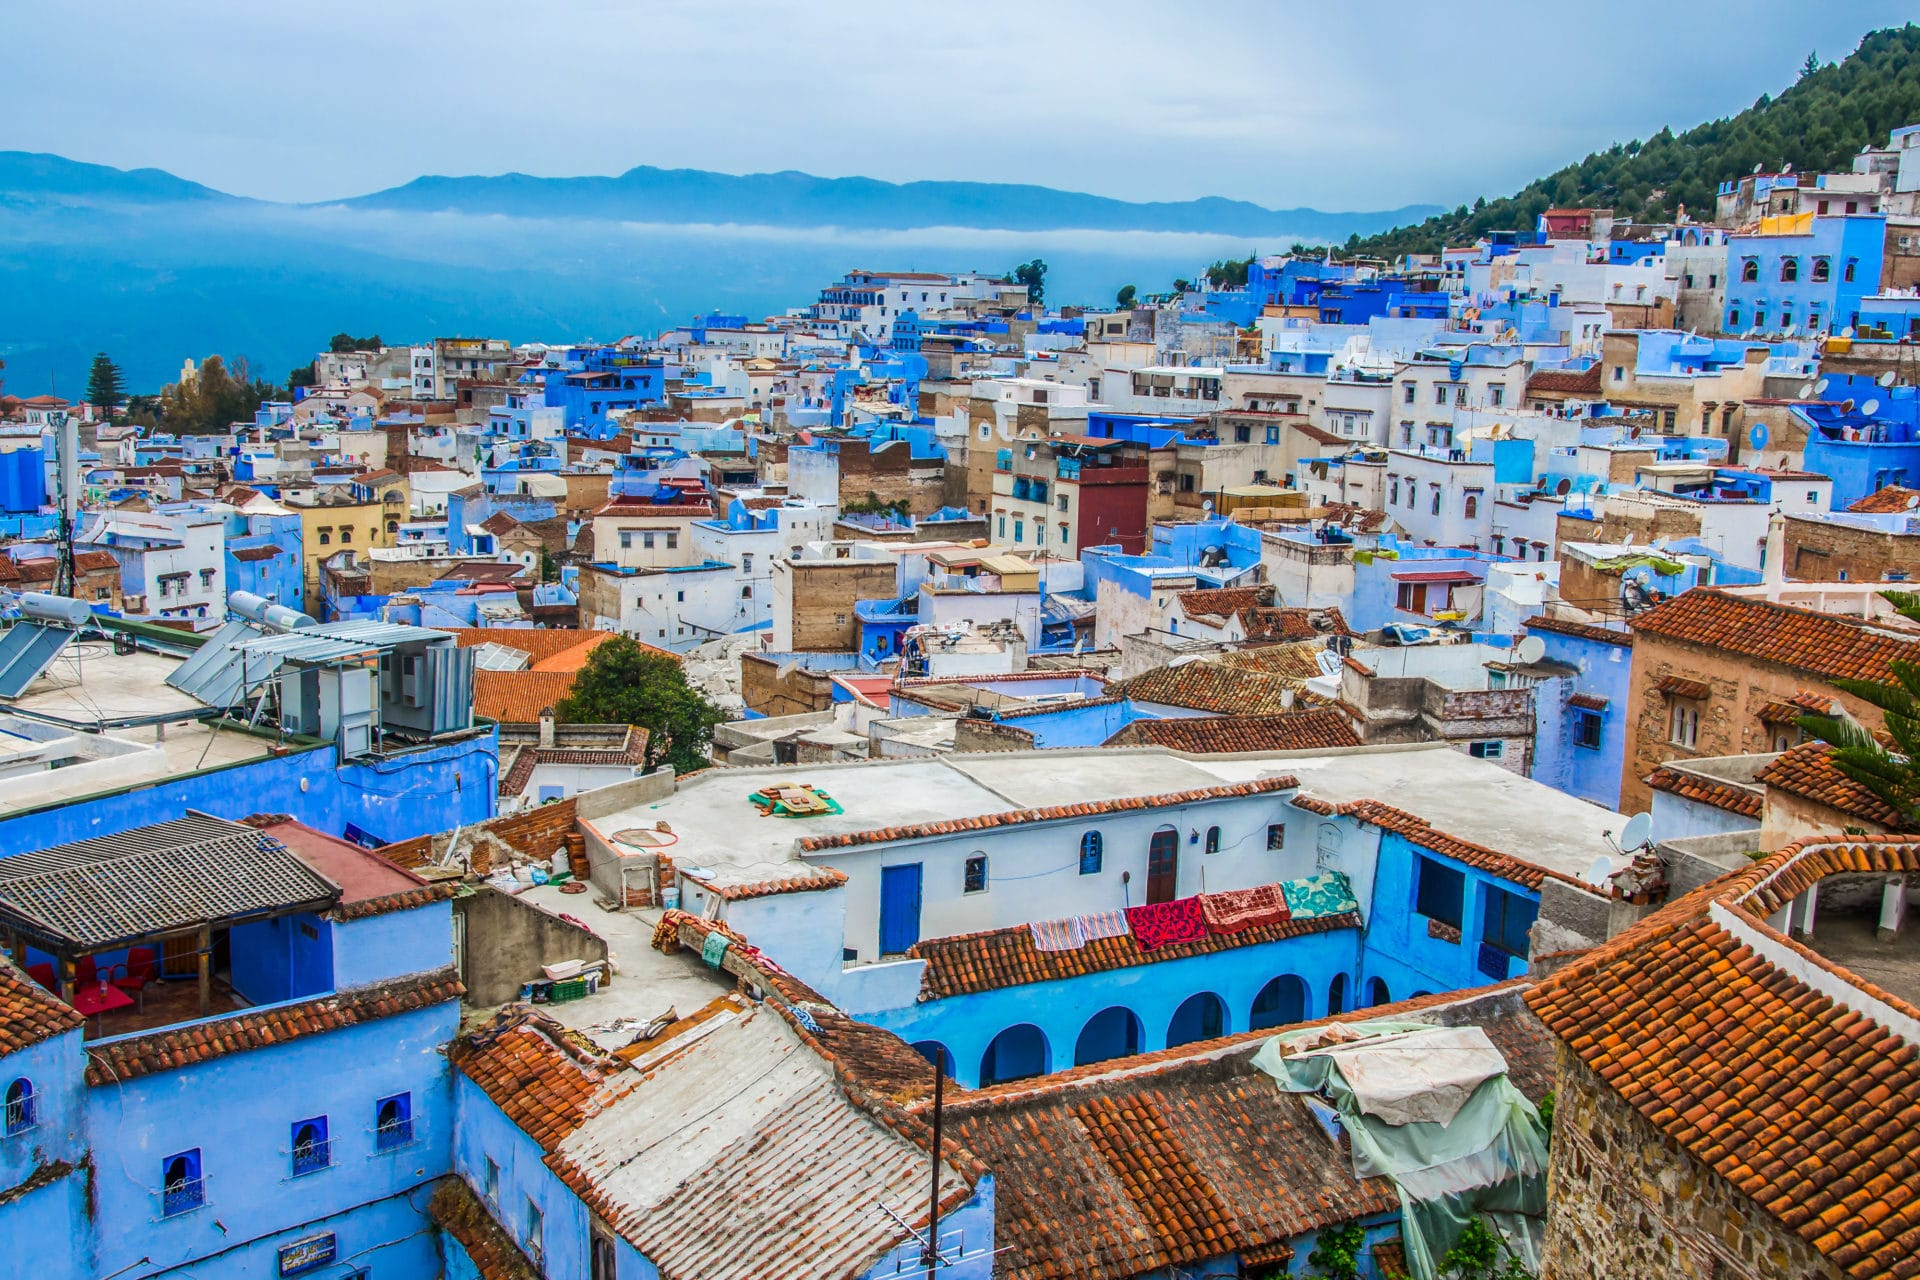 view look over Chefchaouen